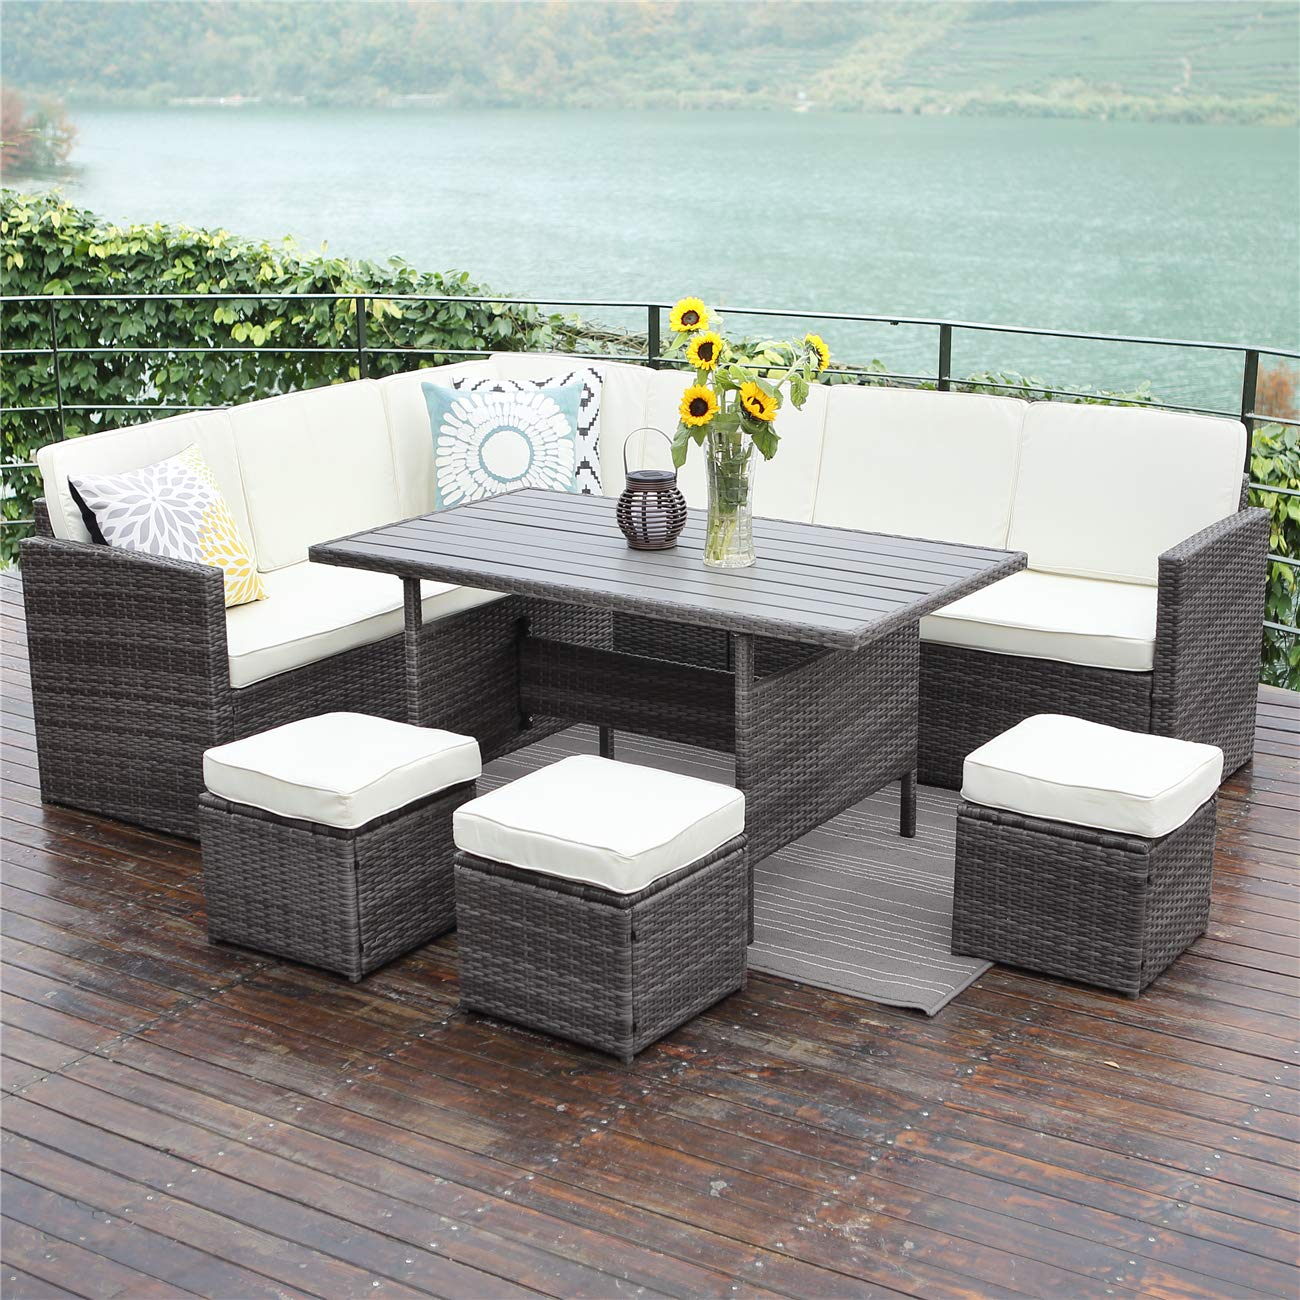 Amazon com wisteria lane outdoor patio furniture set10 pcs sectional conversation set all weather wicker sofa table chair stoolgrey garden outdoor